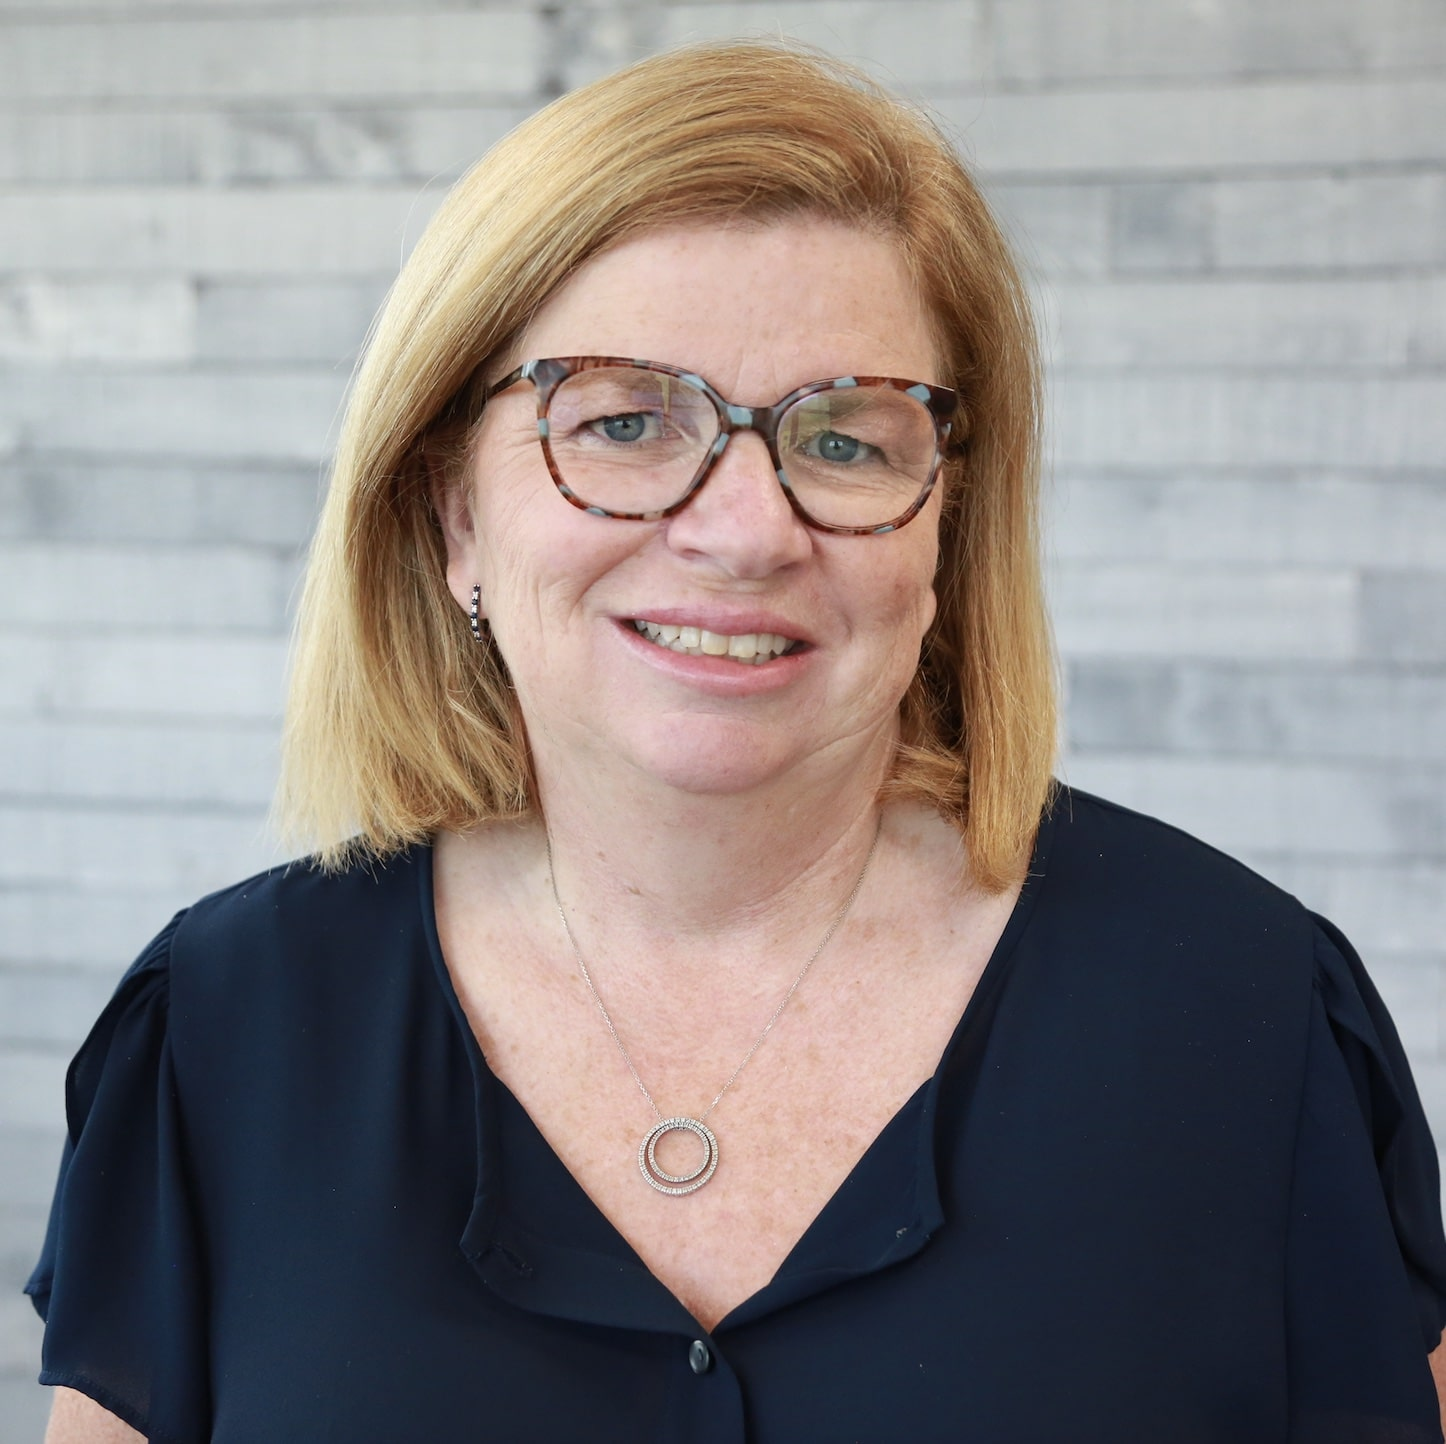 Anne Brown - CEO Cook Center for Human Connection